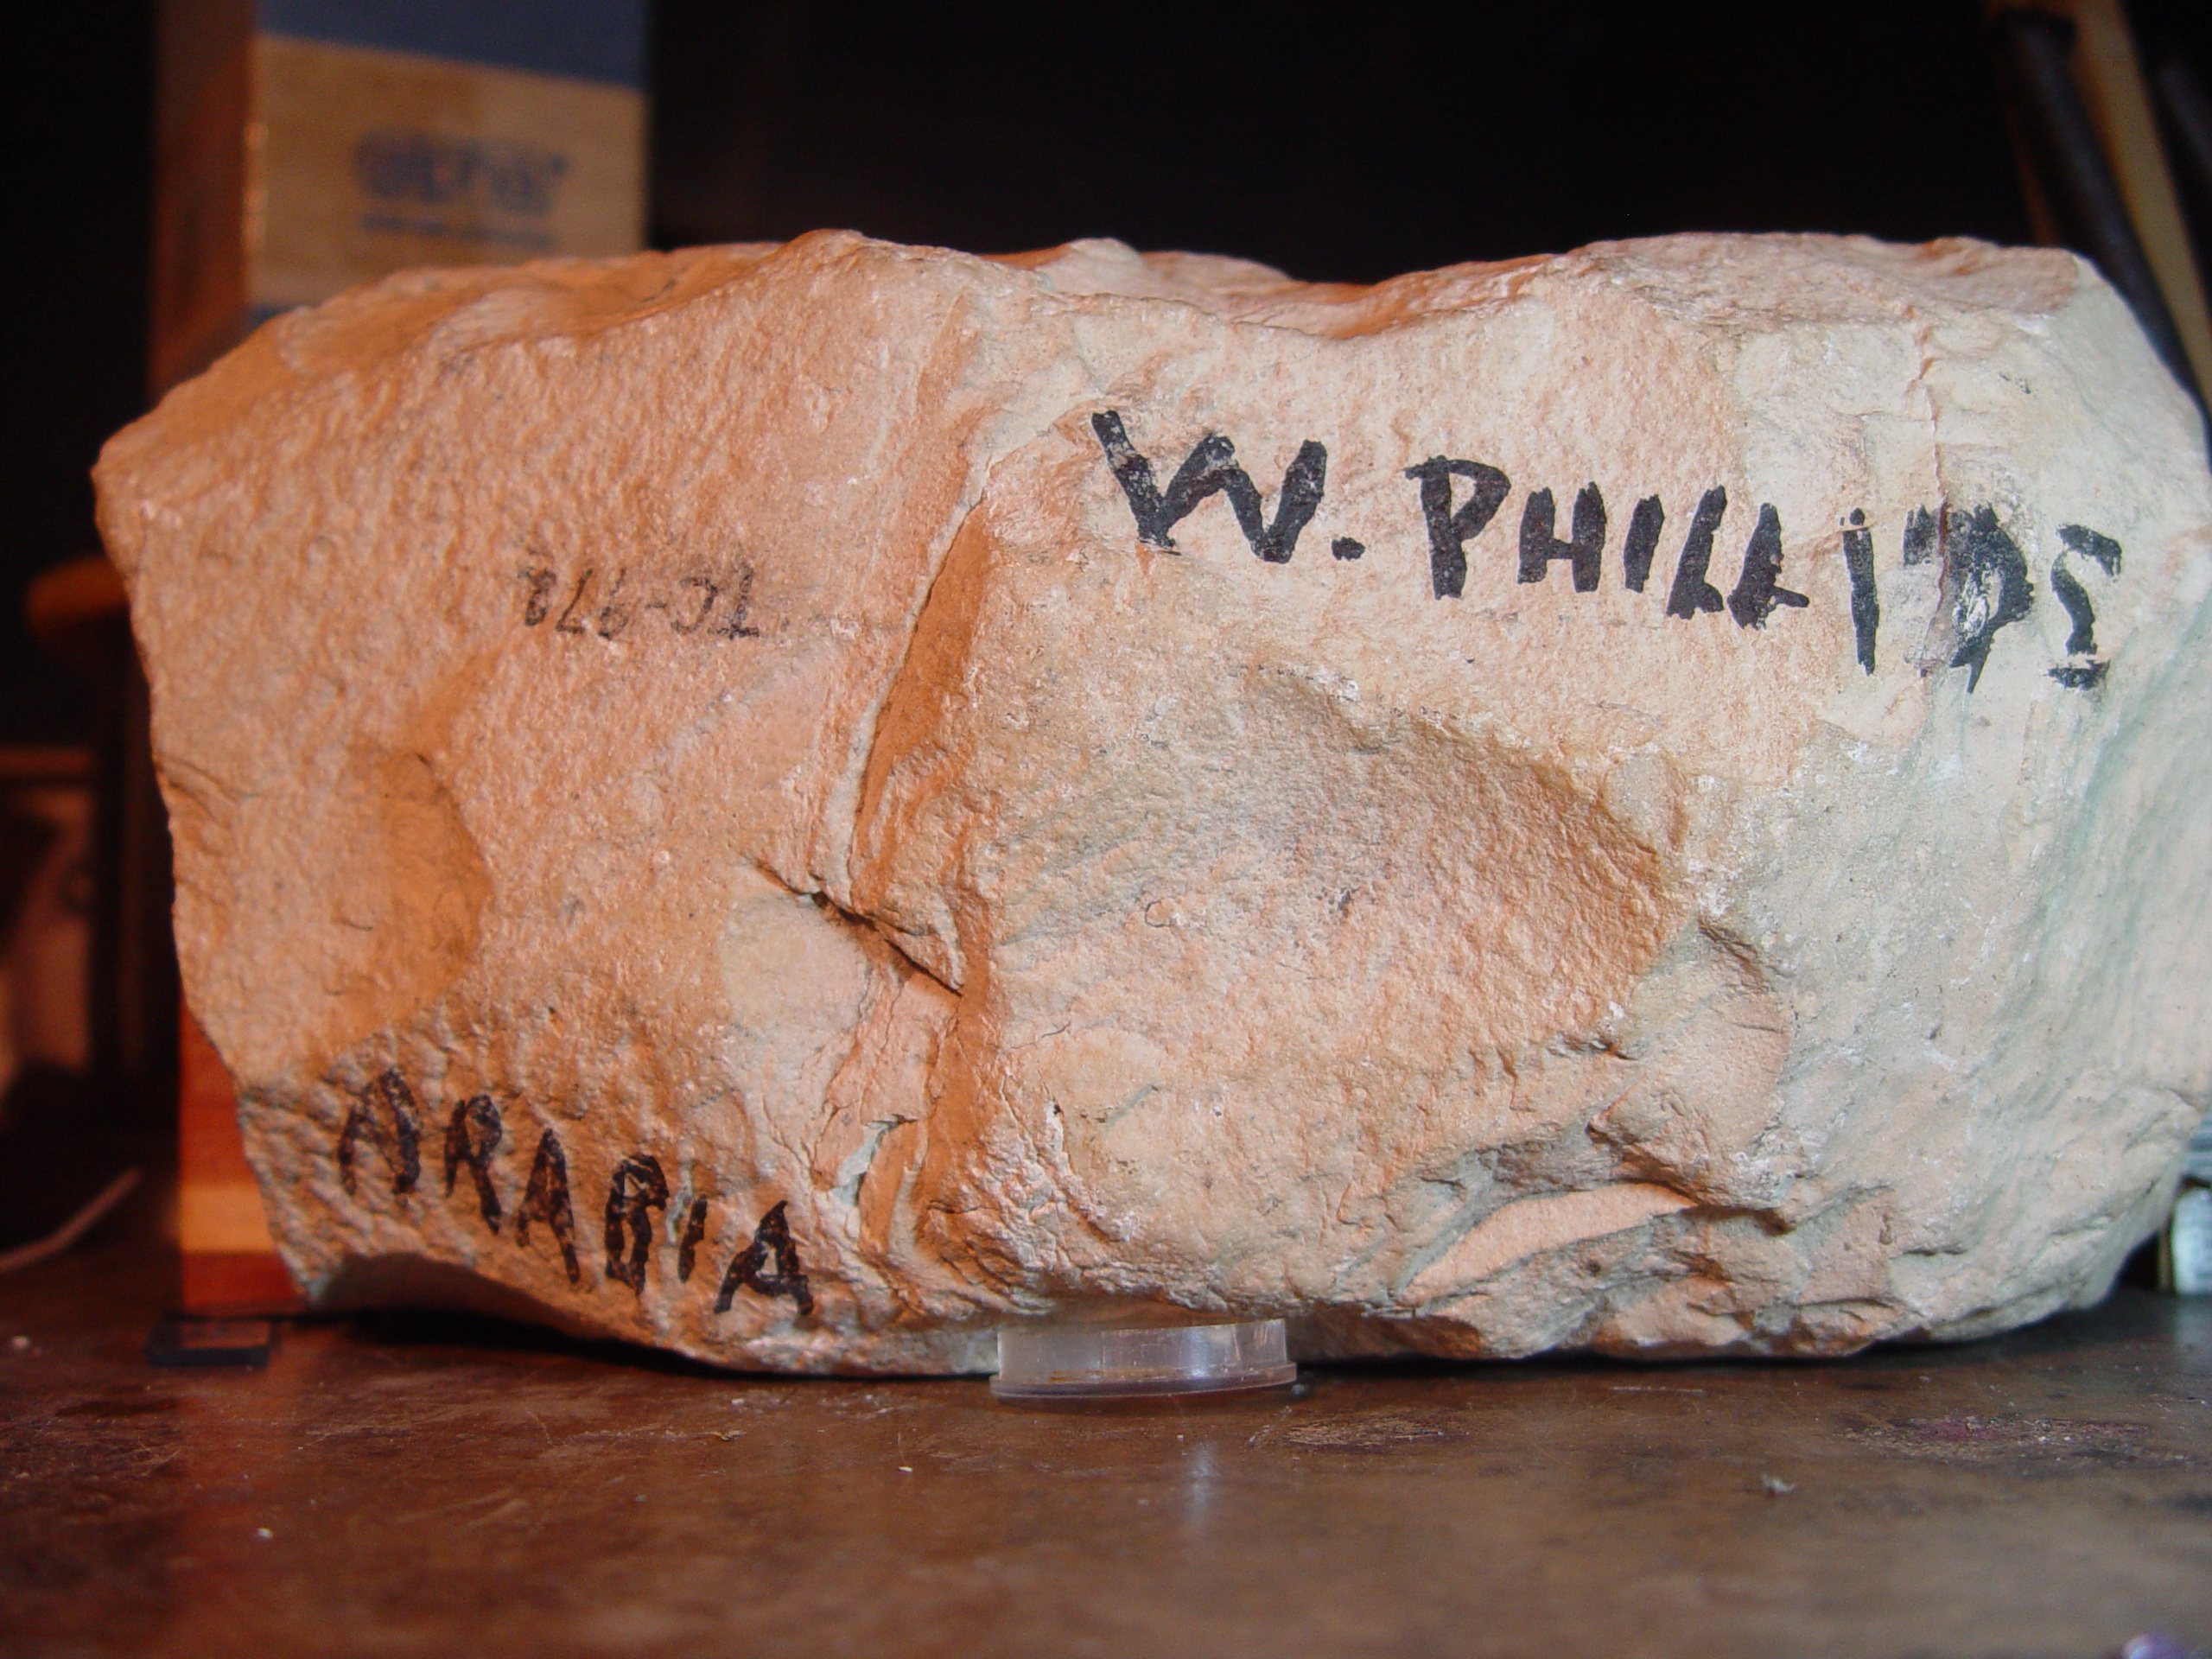 back of stone with signature